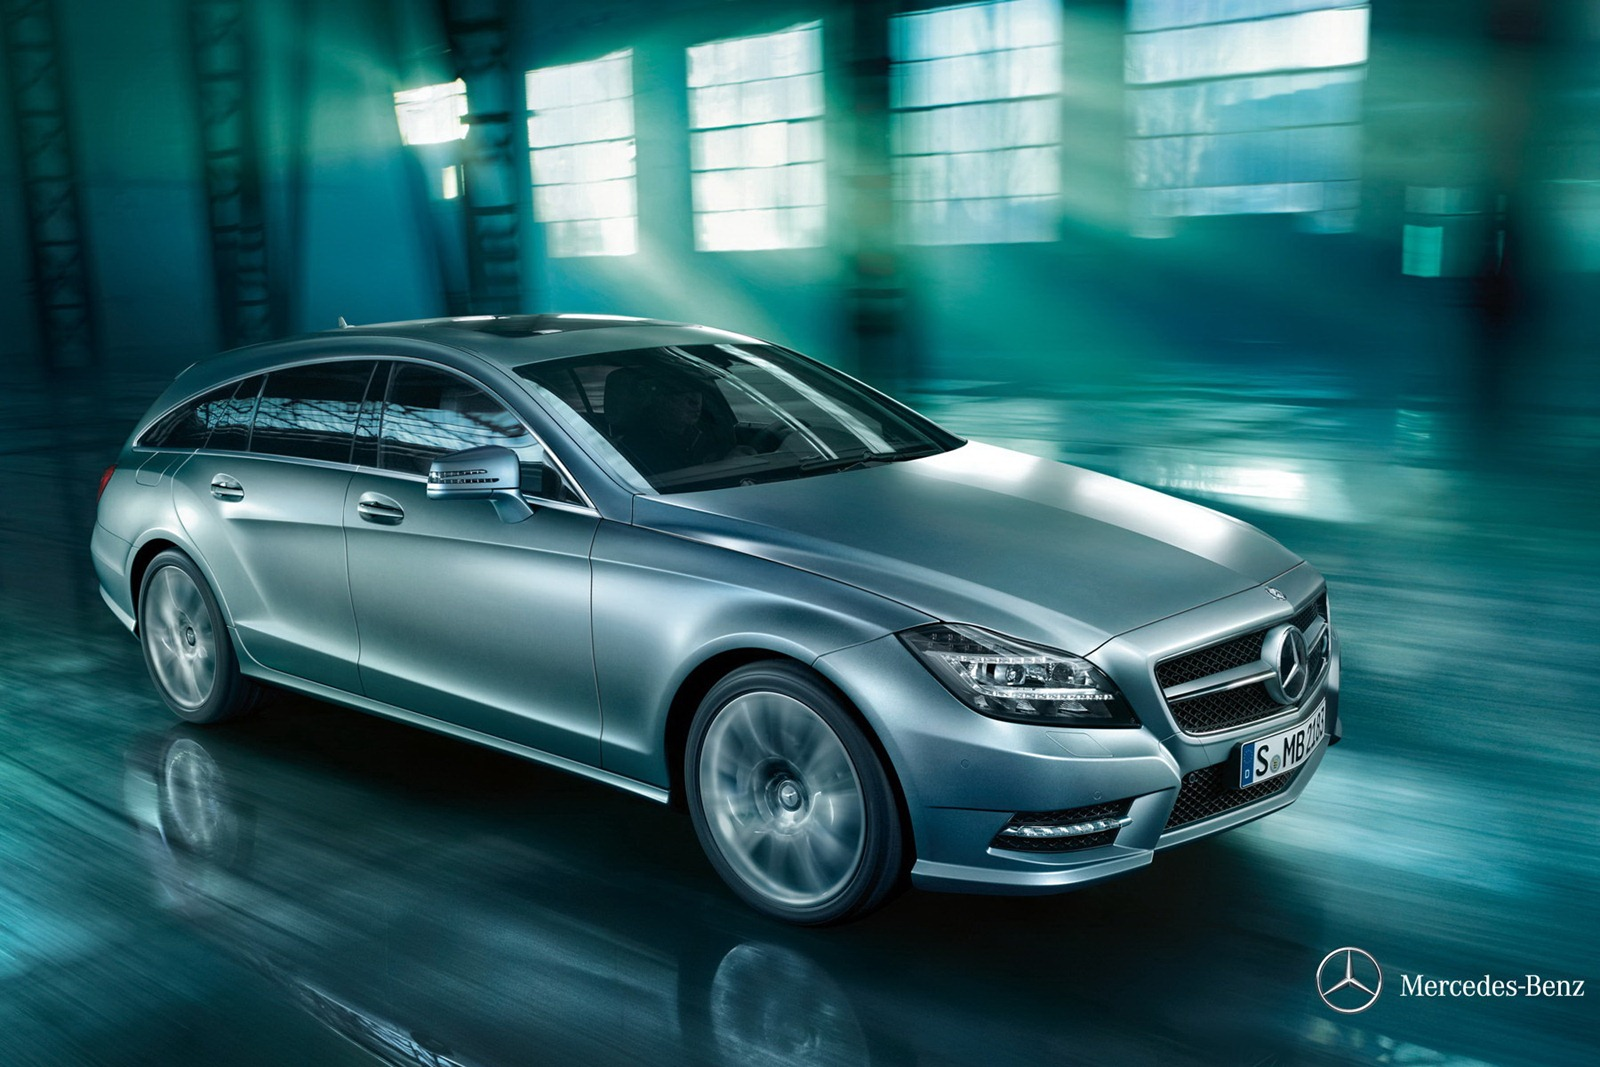 new mercedes cls shooting brake revealed in full. Black Bedroom Furniture Sets. Home Design Ideas